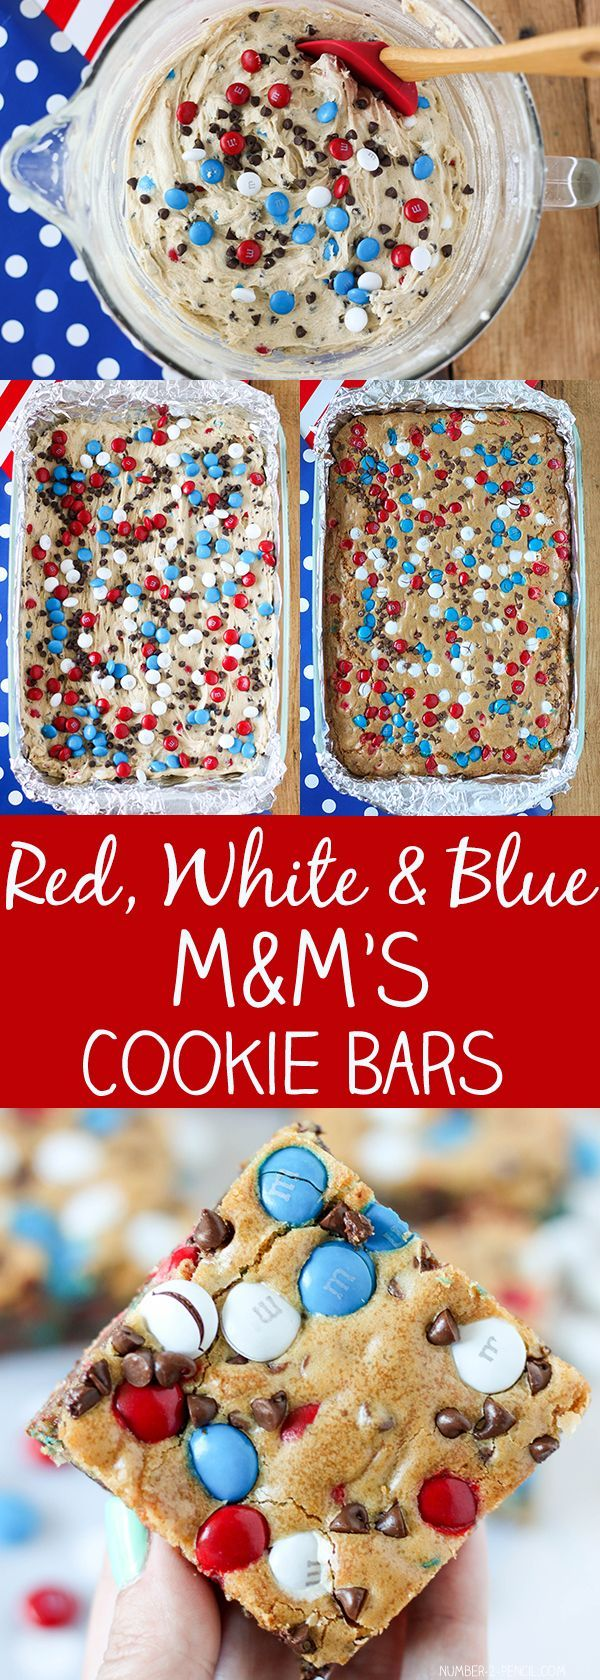 check out red, white & blue m&m's cookie bars. it's so easy to make!